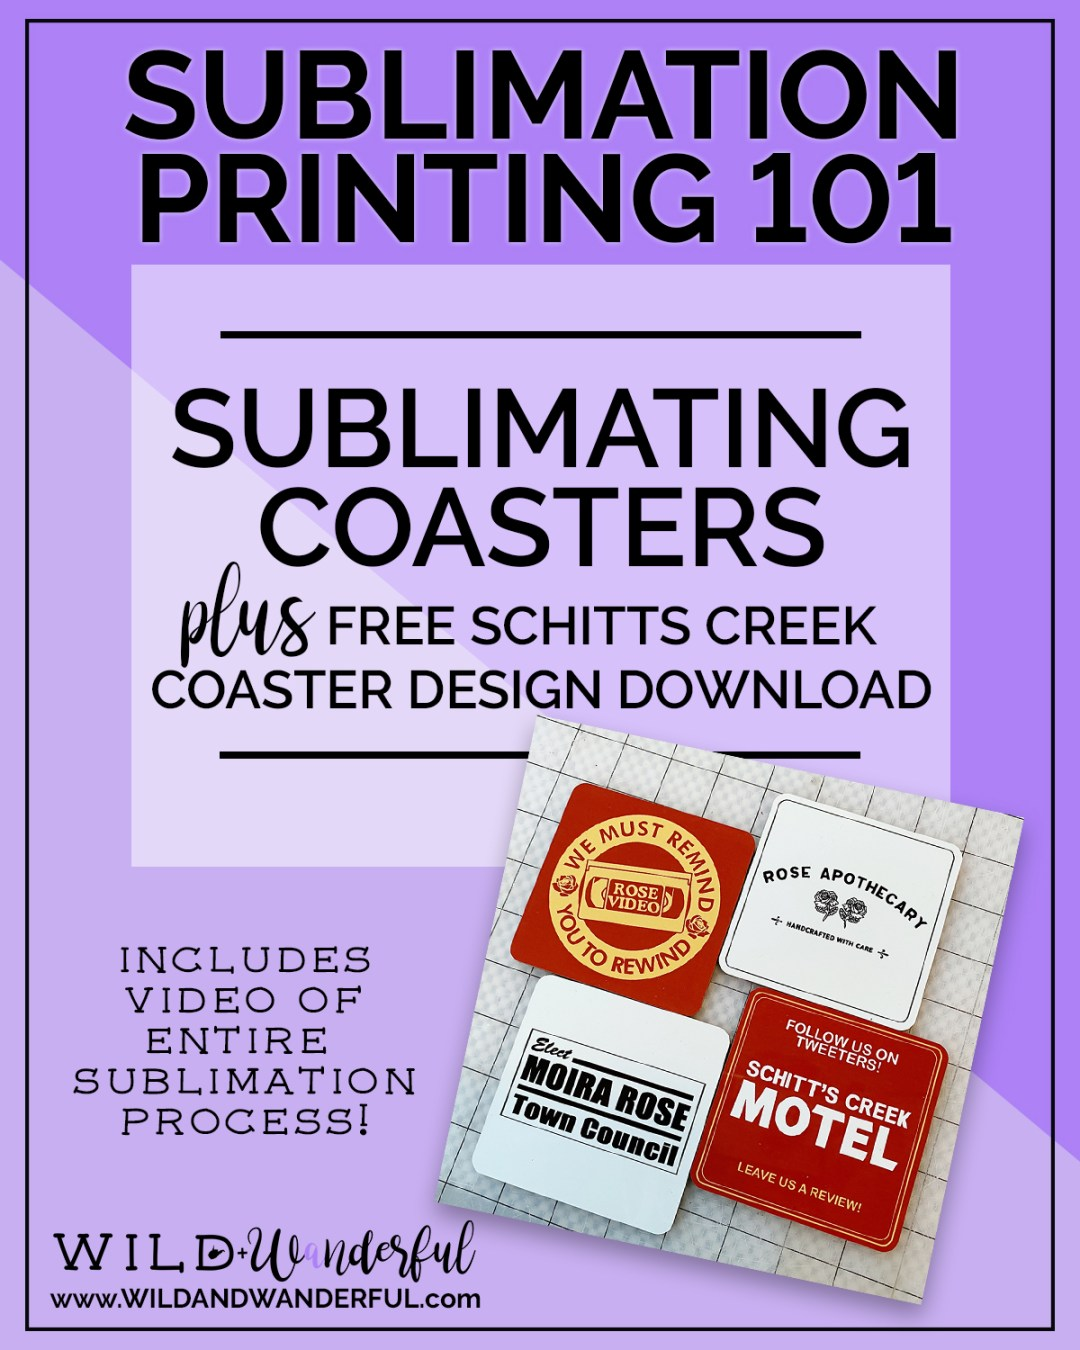 Sublimation Printing 101 | Sublimating Coasters (plus a FREE Schitts Creek coaster printable!)